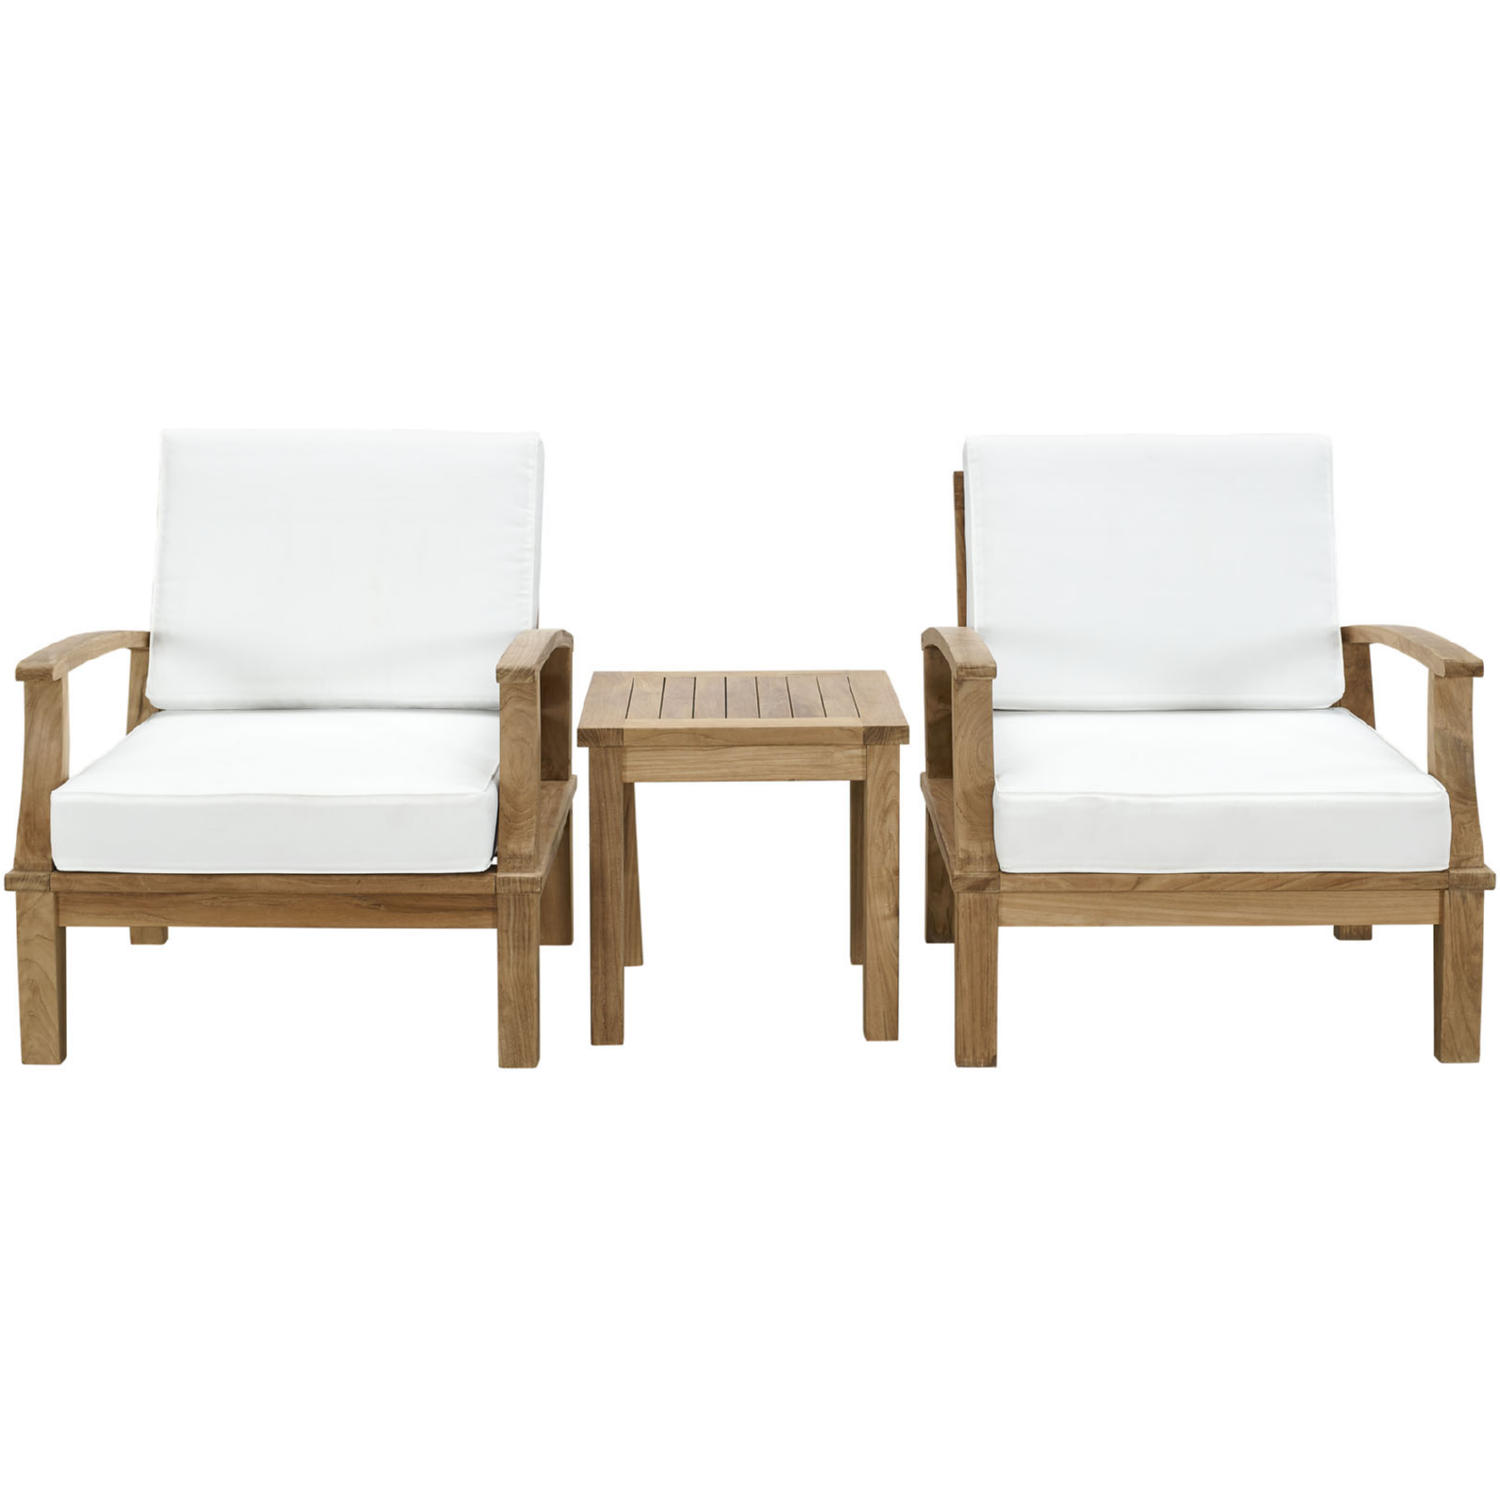 Admirable Marina 3 Pc Outdoor Patio Teak Sofa Set W White Cushions By Modway Download Free Architecture Designs Sospemadebymaigaardcom